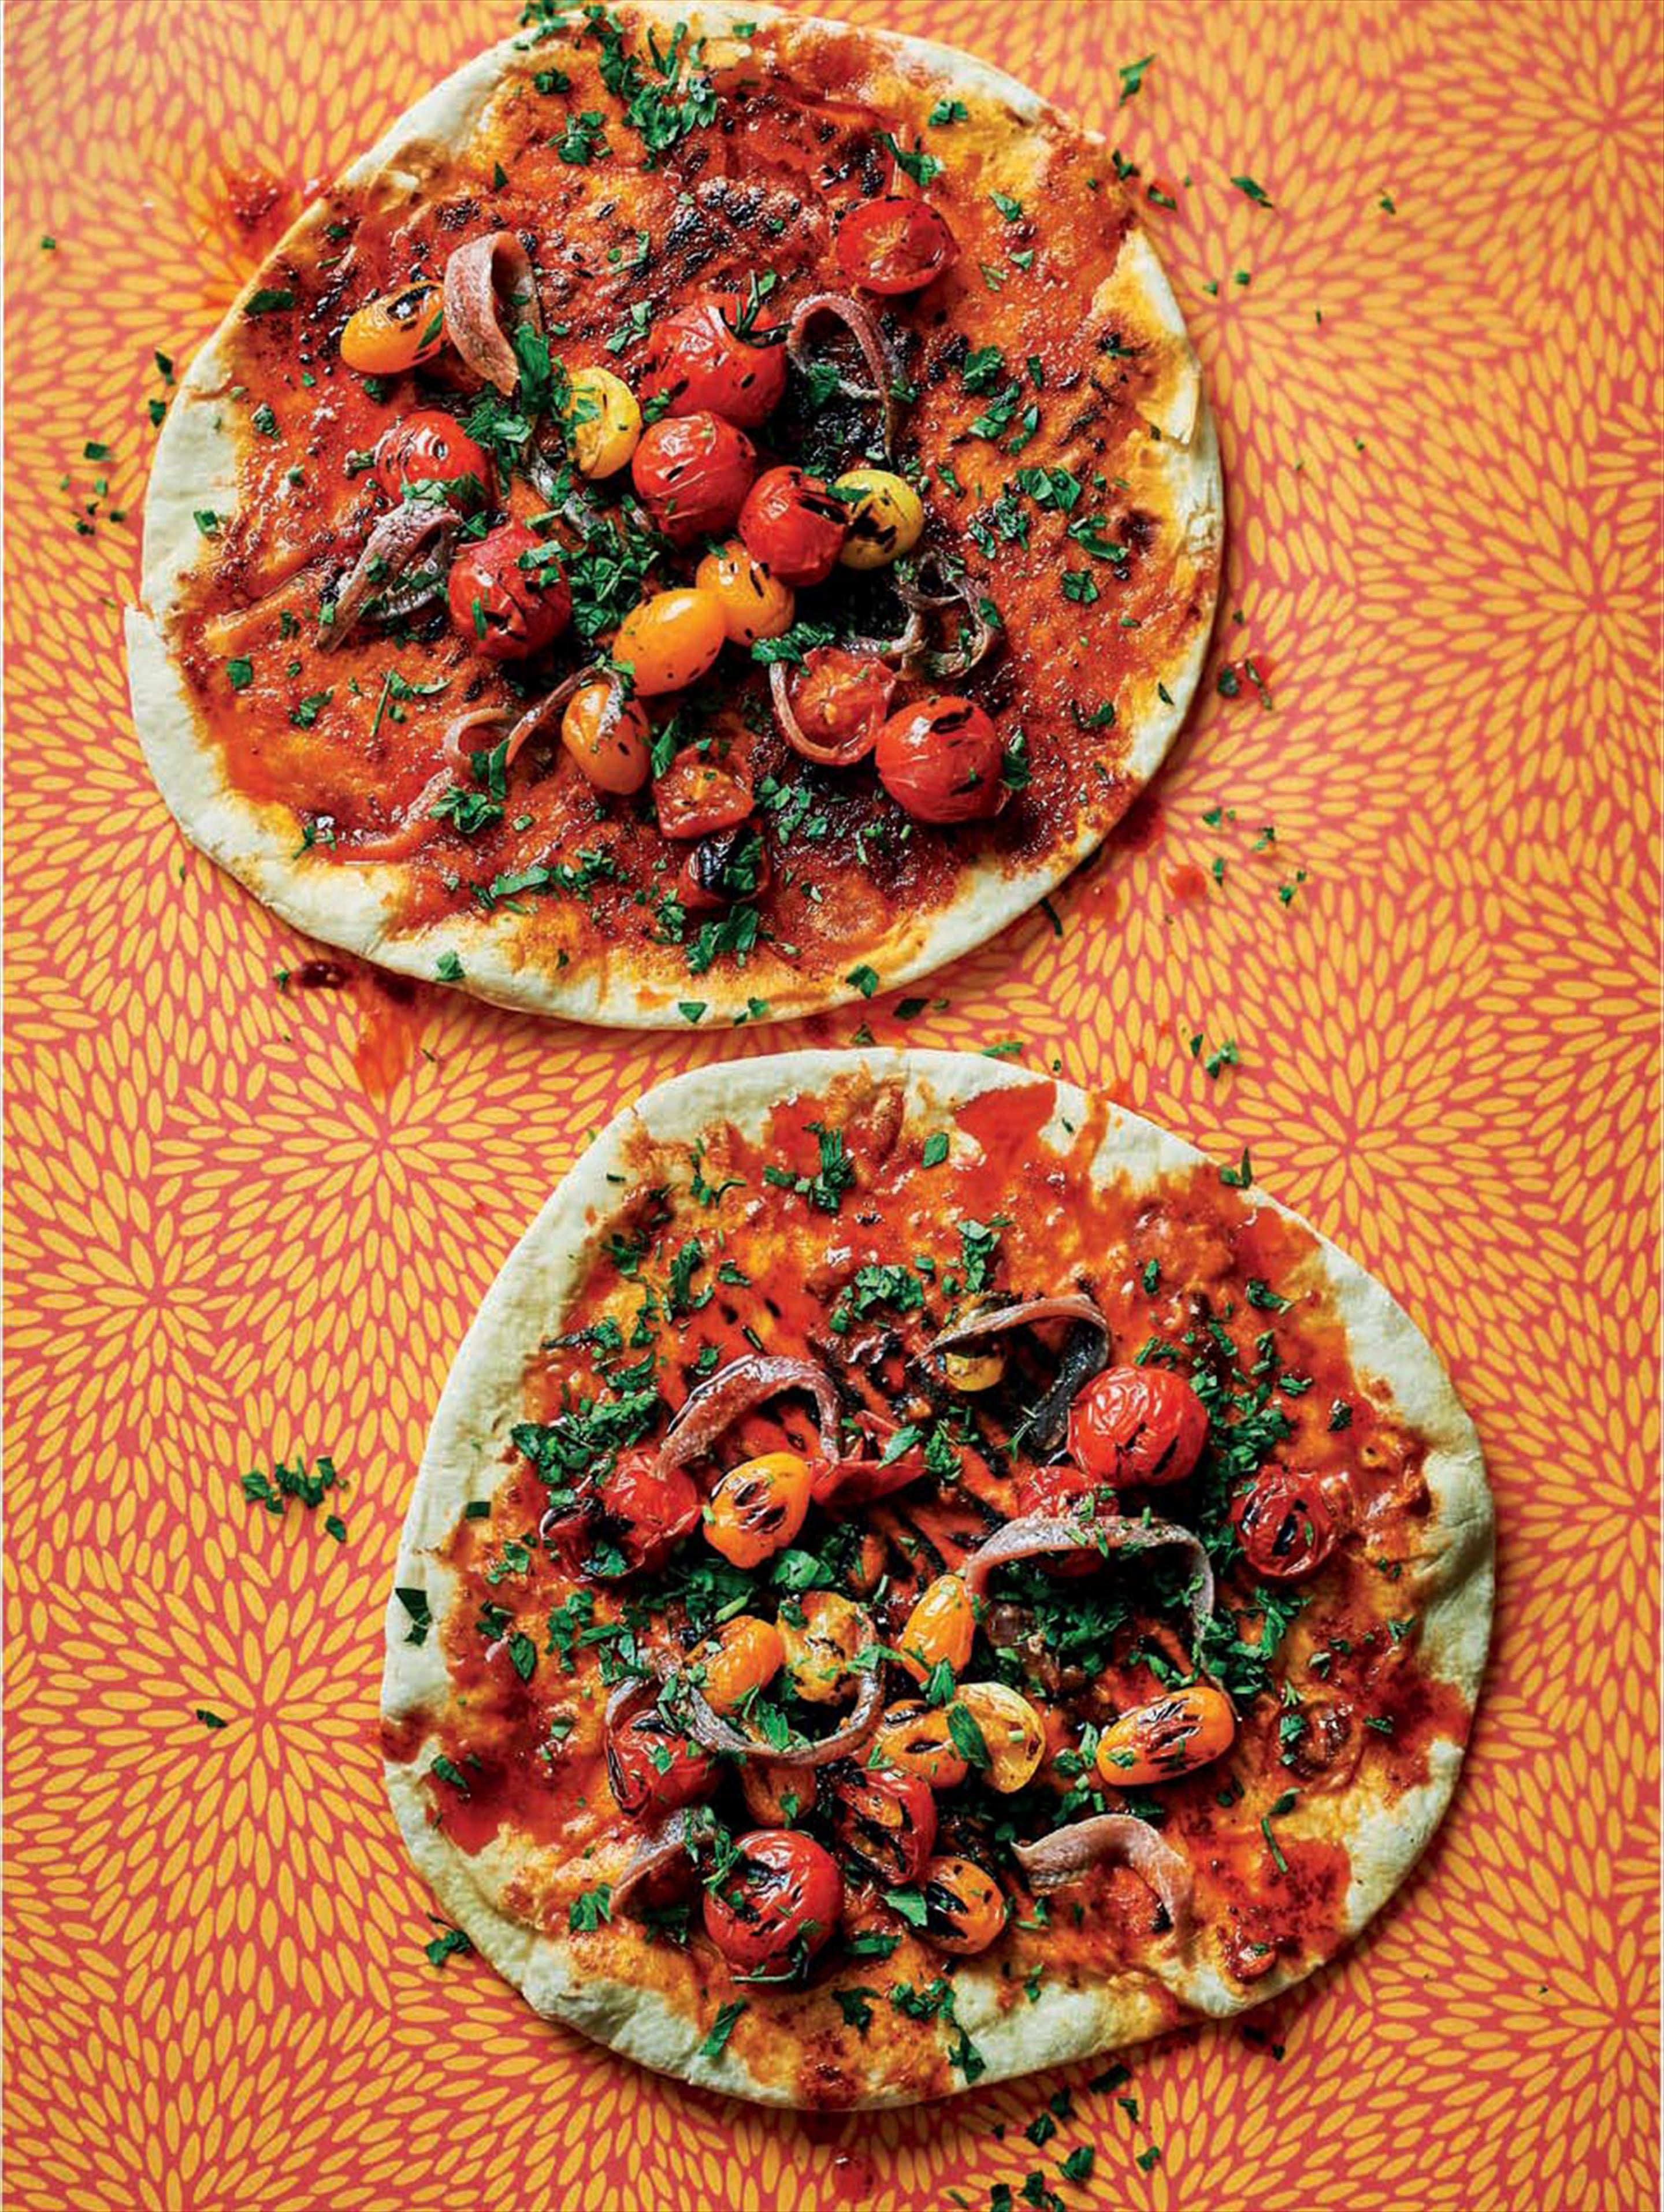 Anchovy & tomato paprika flatbreads